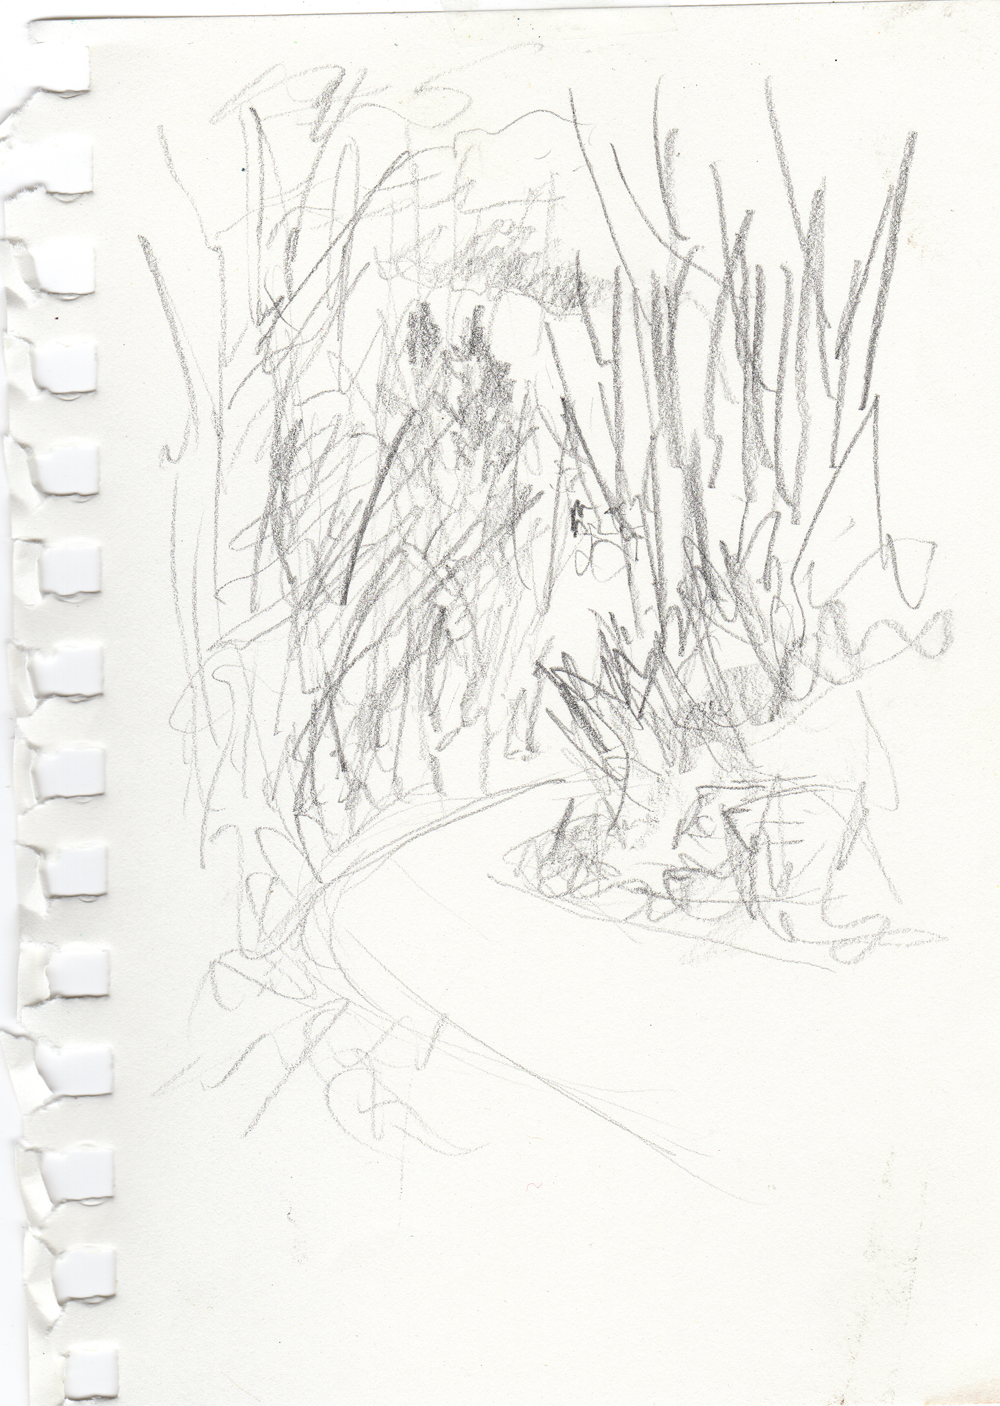 "Trail Sketch, 4"" x 6"", pencil © Bernadette E. Kazmarskiu."